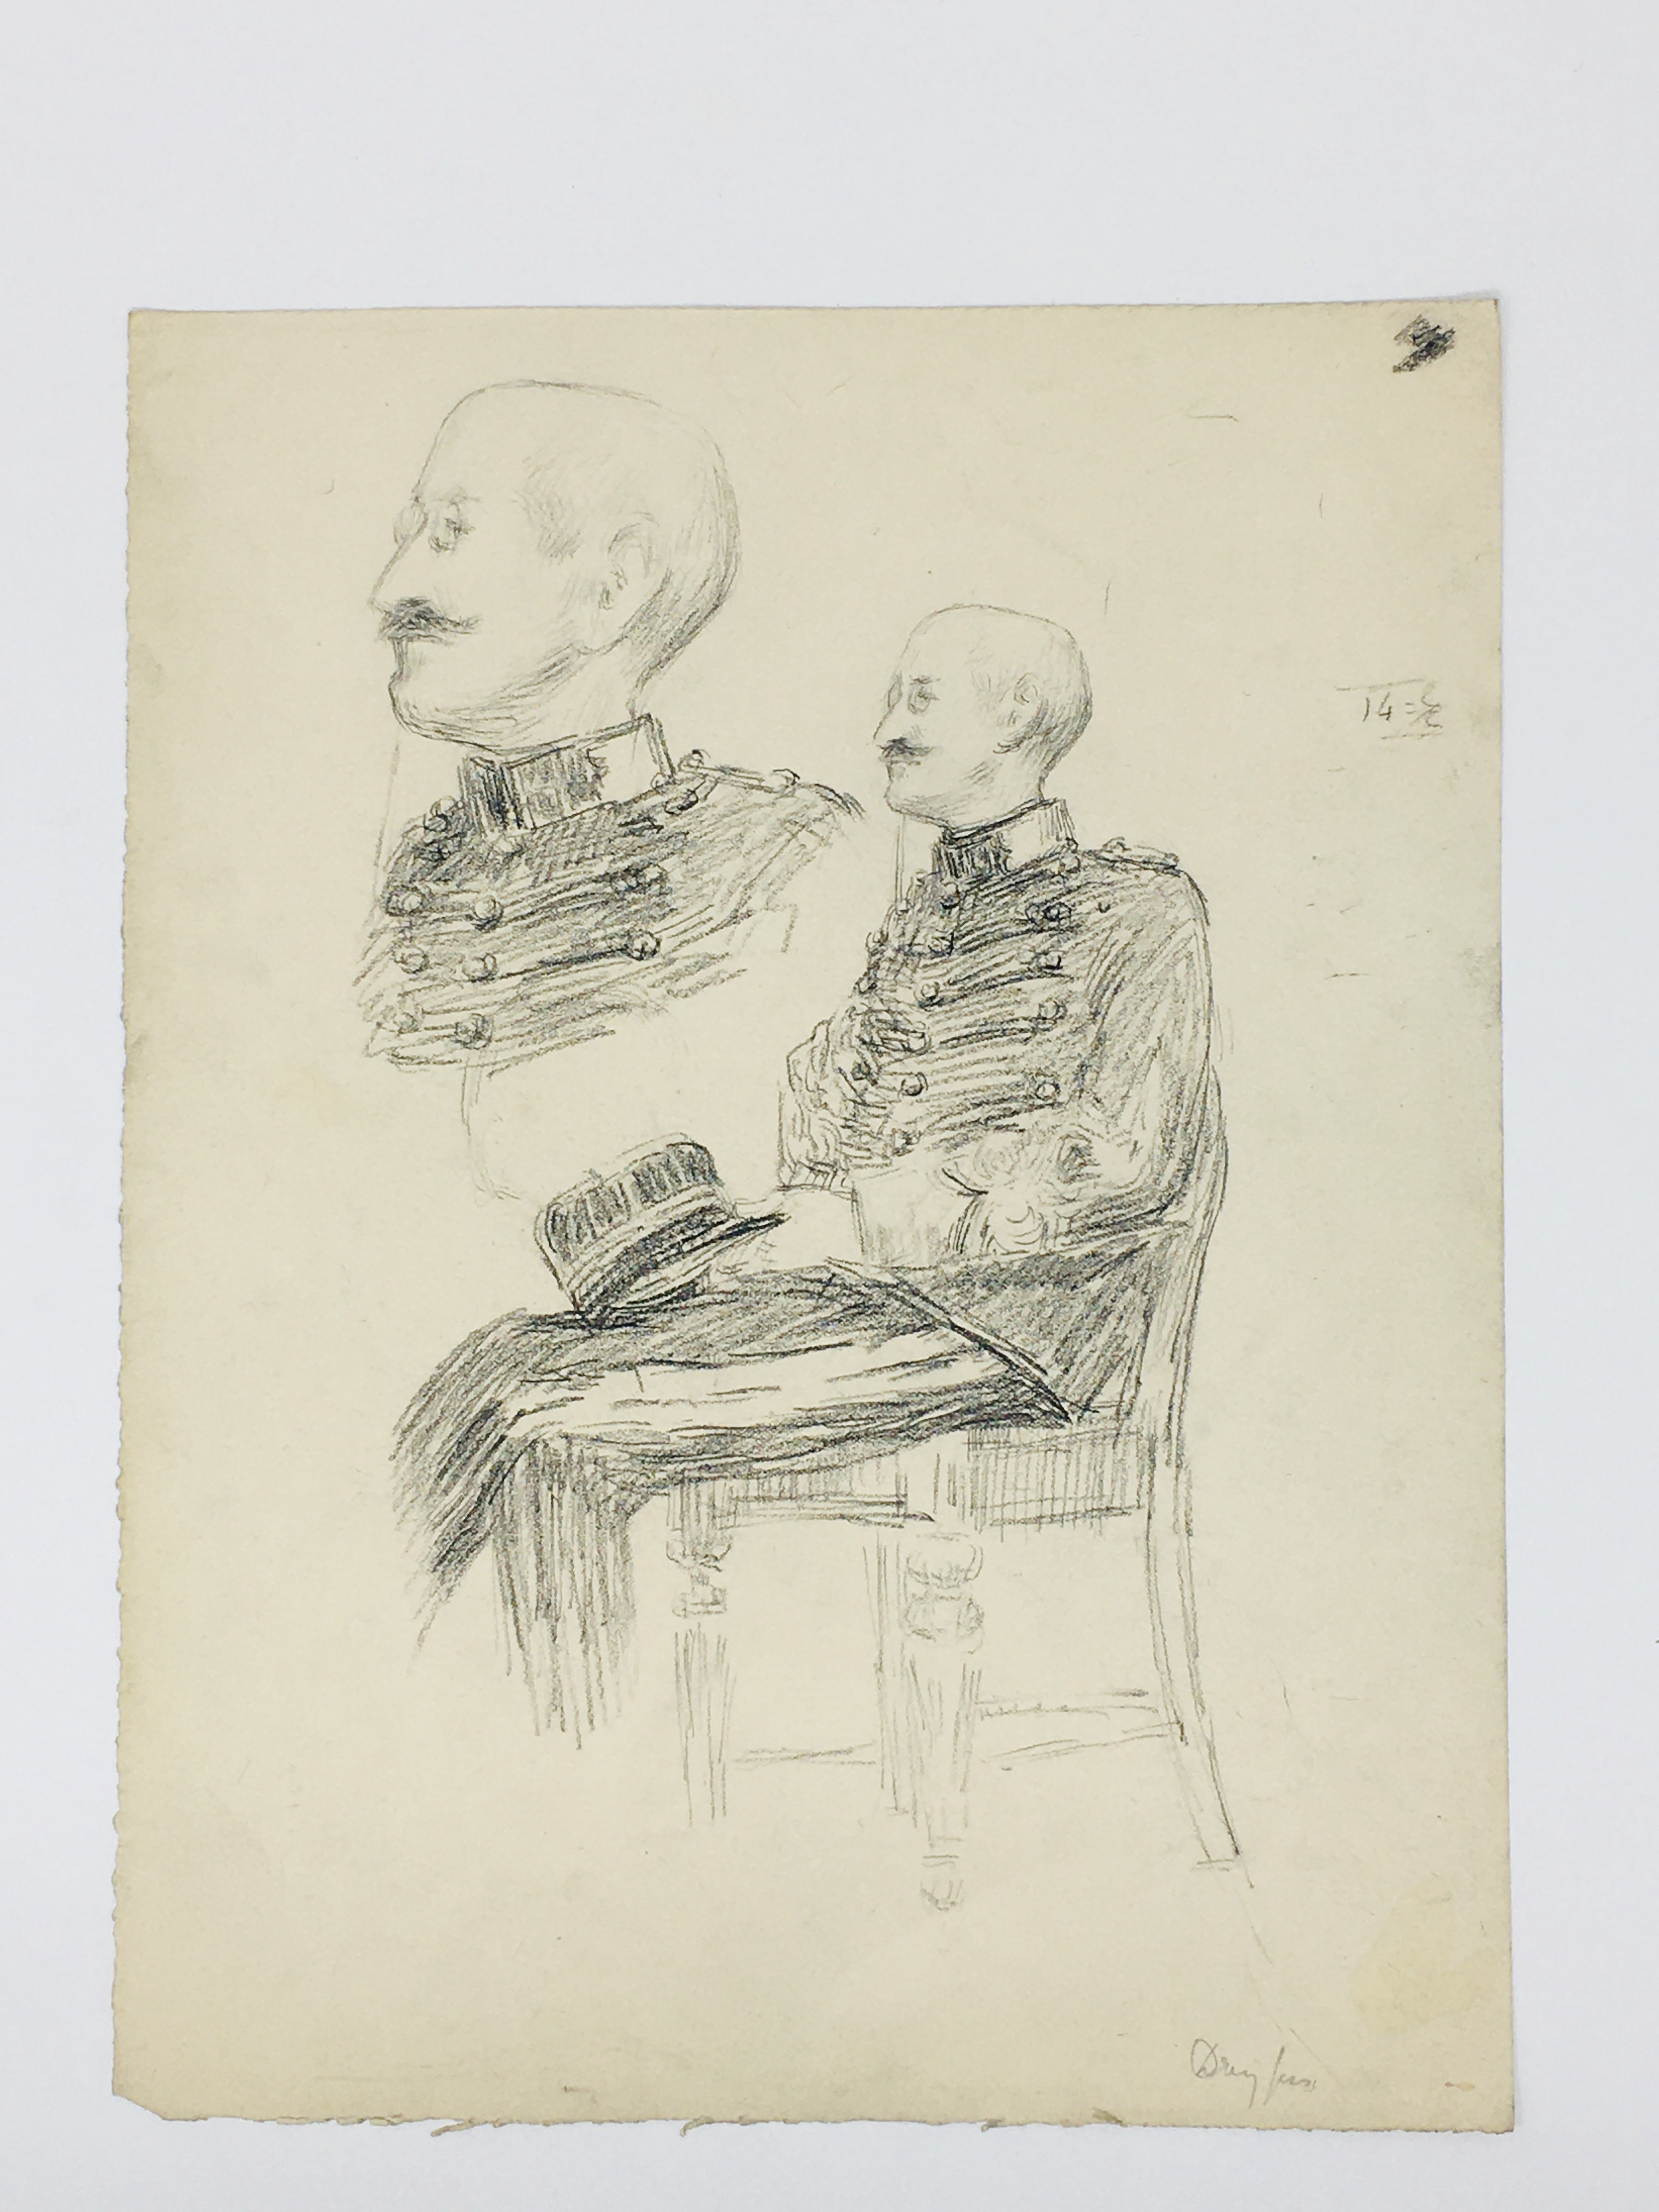 J'Accuse Newspaper, Emile Zola Quote, Signed Dreyfus Portrait, Rare Trial Drawings & Schwartzkoppen - Image 14 of 74